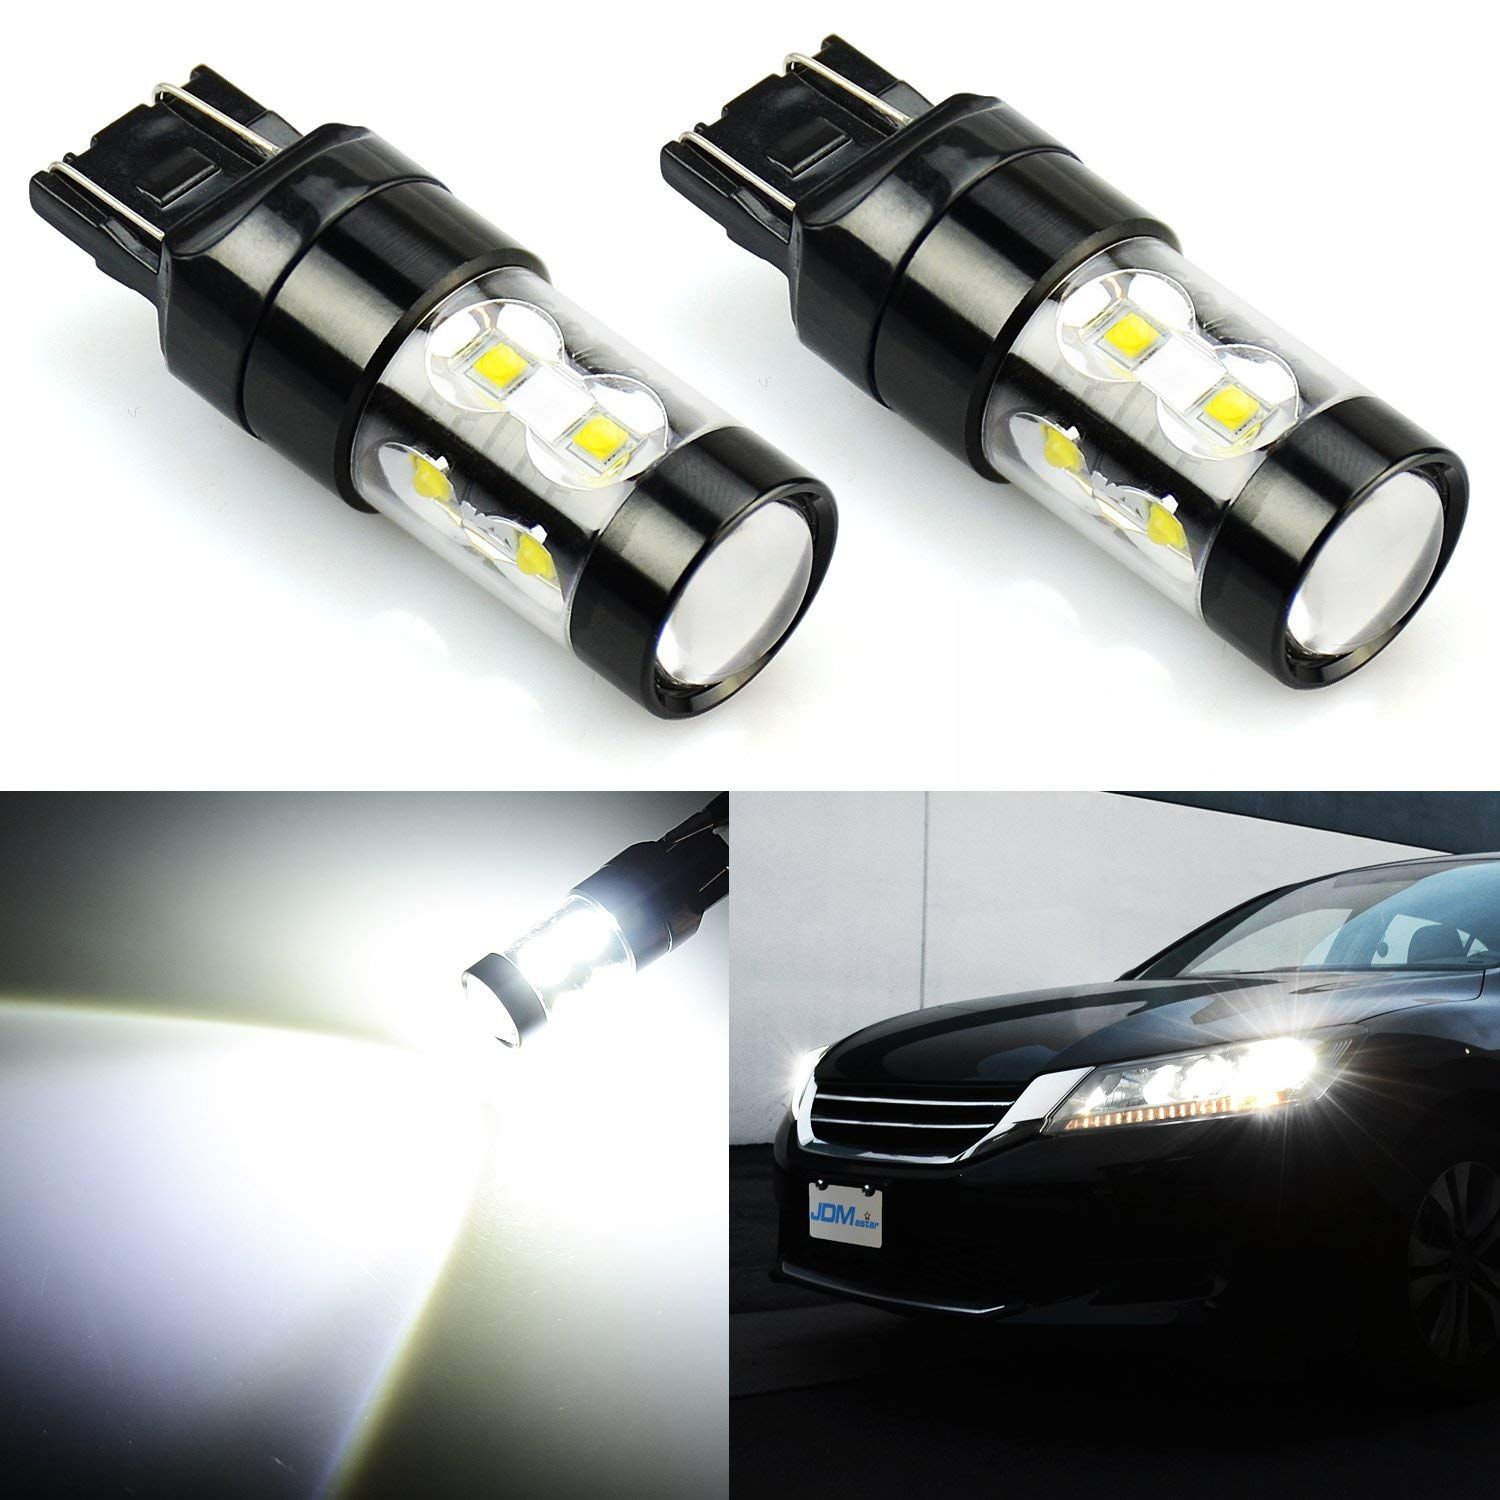 jdm astar extremely bright max 50w high power 7444 7443 7441 7440 led fog light bulbs for back up reverse lights xenon white price 12 49 [ 1500 x 1500 Pixel ]